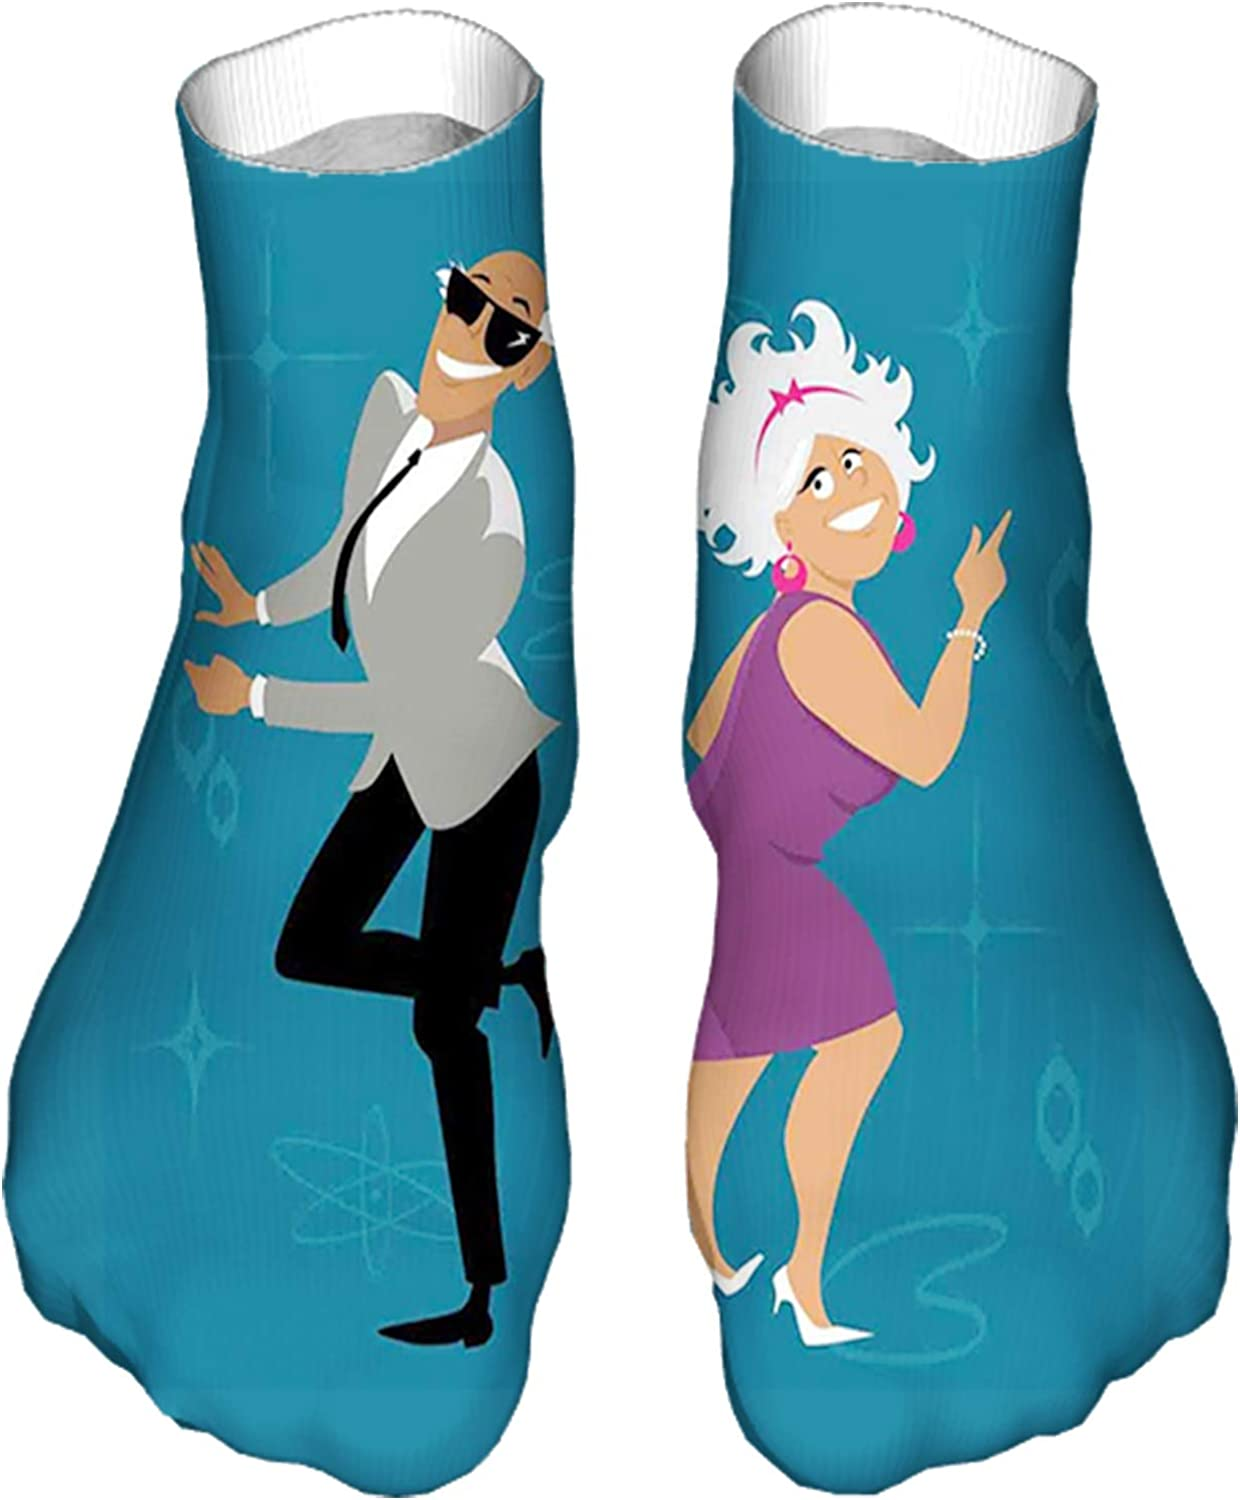 Men's and Women's Fun Socks Printed Cool Novelty Funny Socks,Mature Couple Dressed in 1960s Fashion Clothes and Dancing